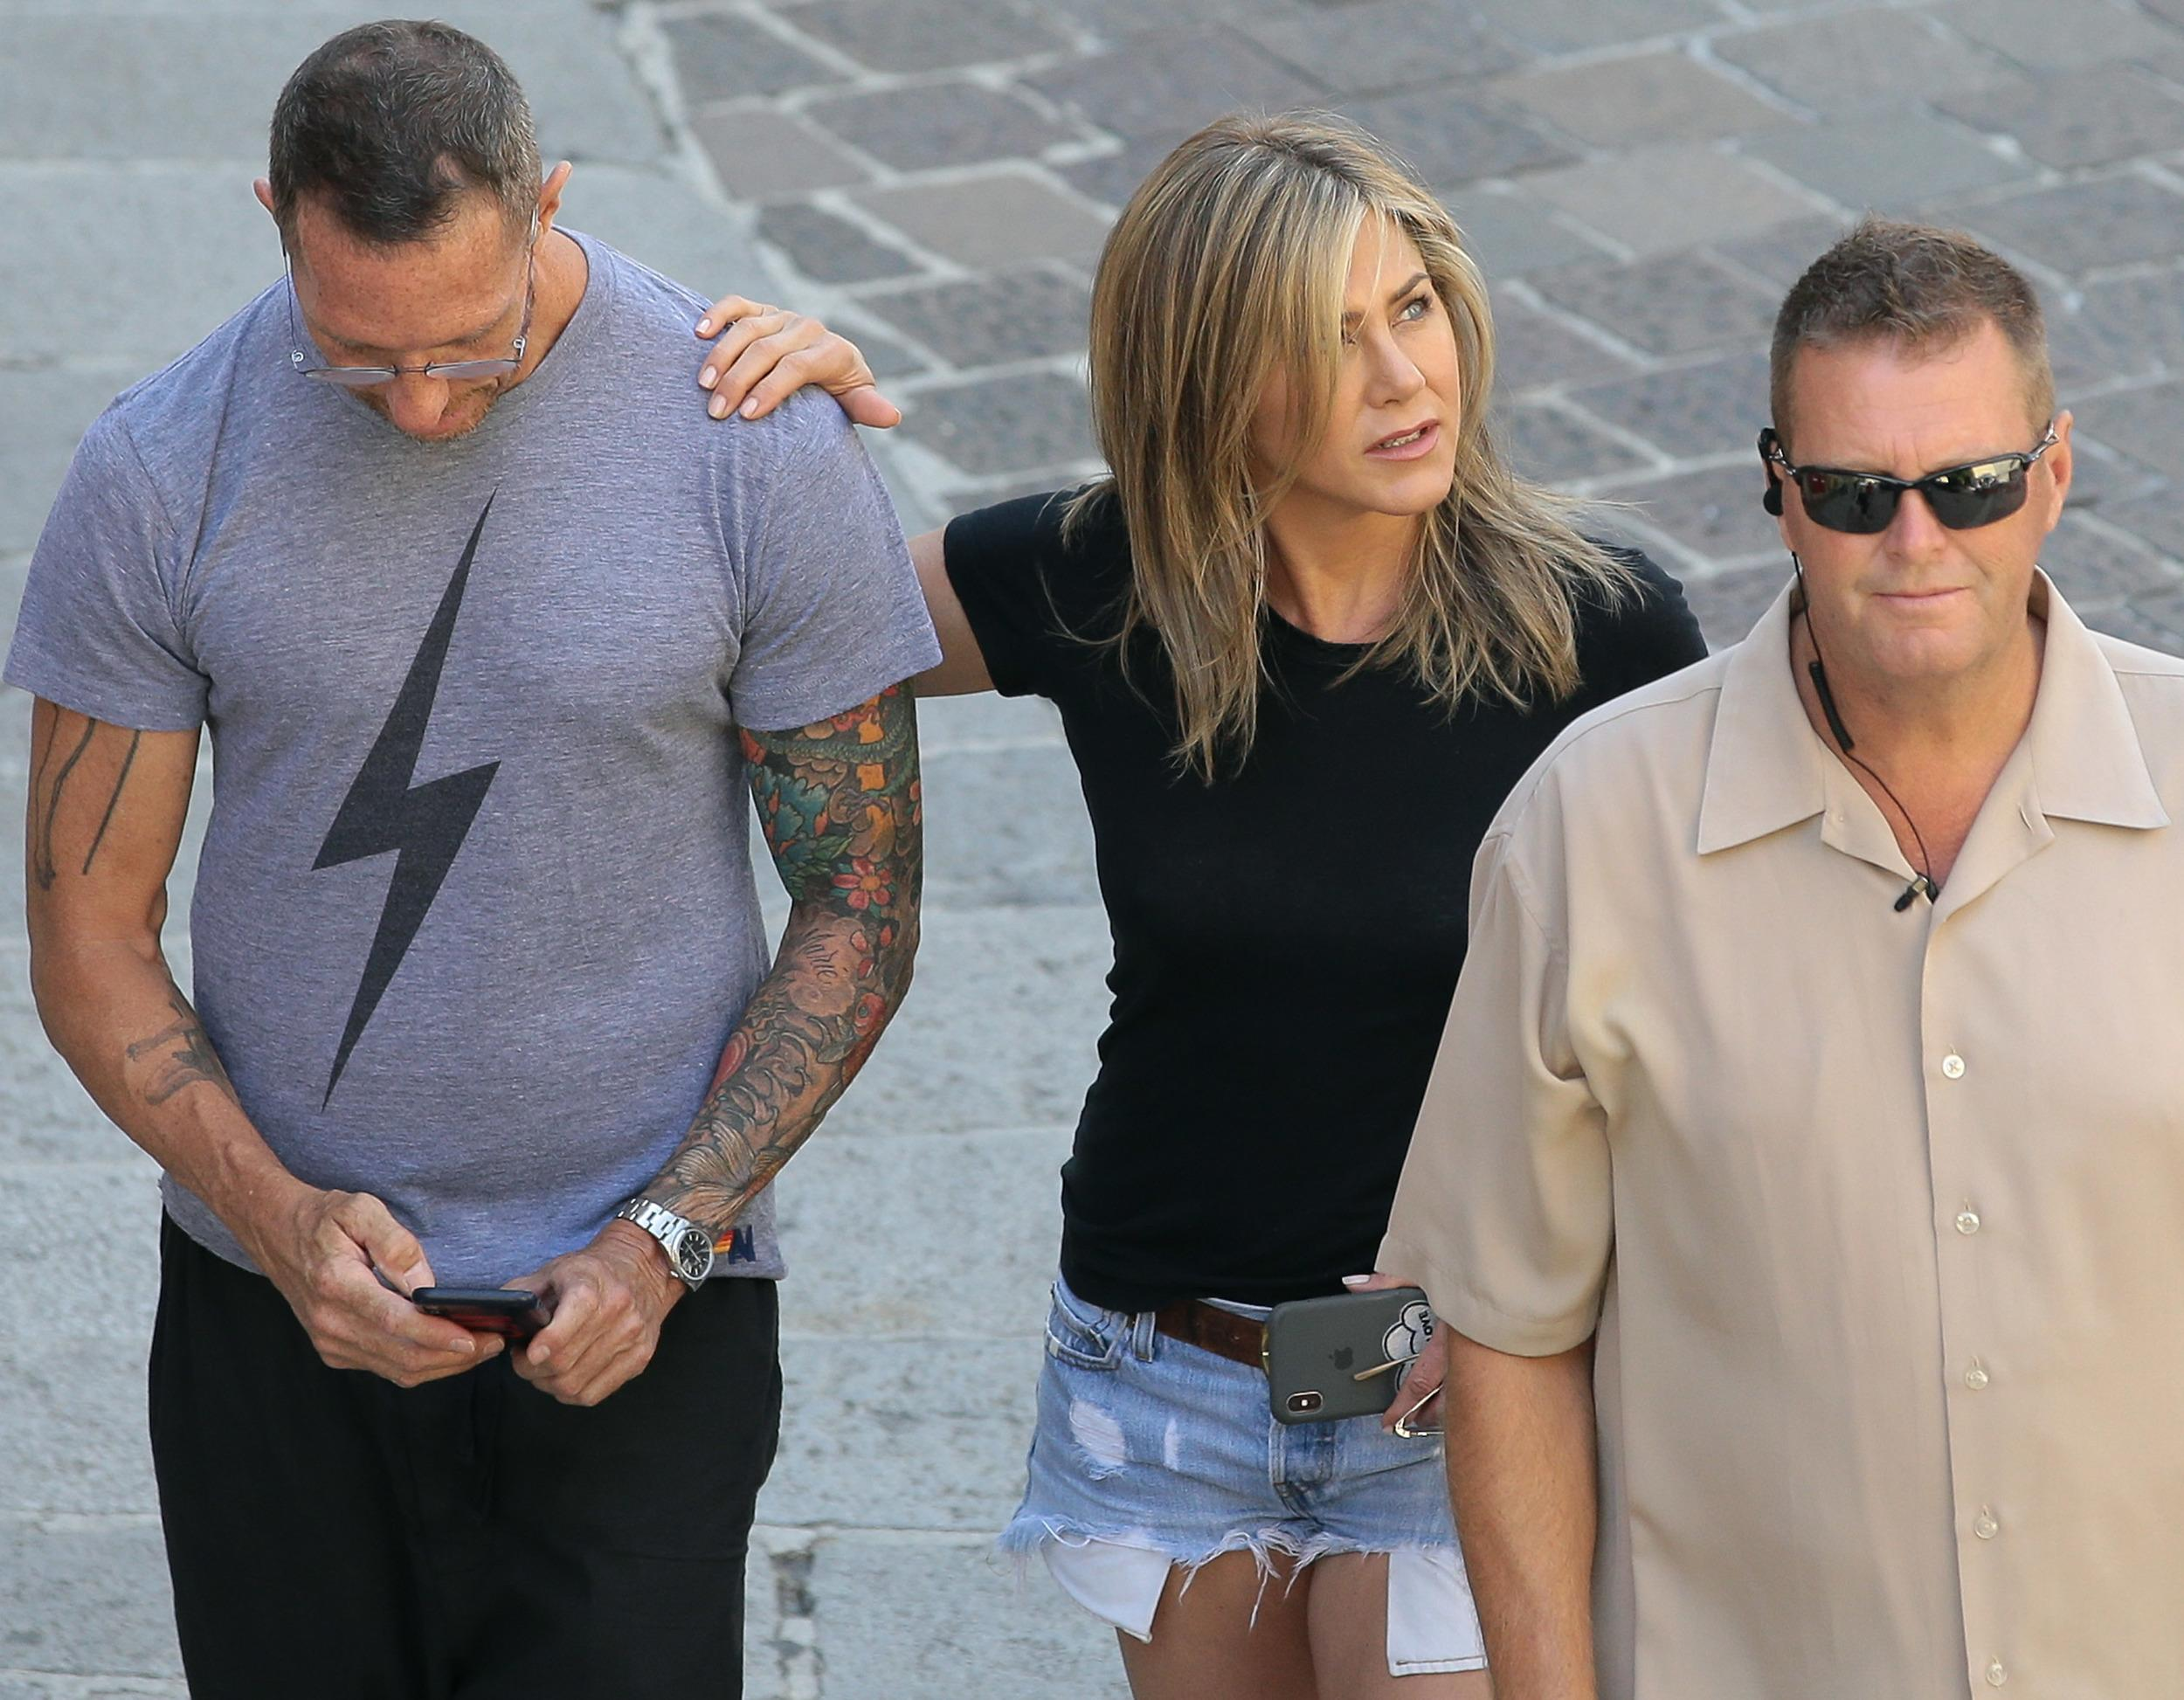 COMO, ITALY - JULY 30:  Jennifer Aniston is seen on set filming 'Murder Mystery' on July 30, 2018 in Como, Italy.  (Photo by Emilio Andreoli/GC Images)